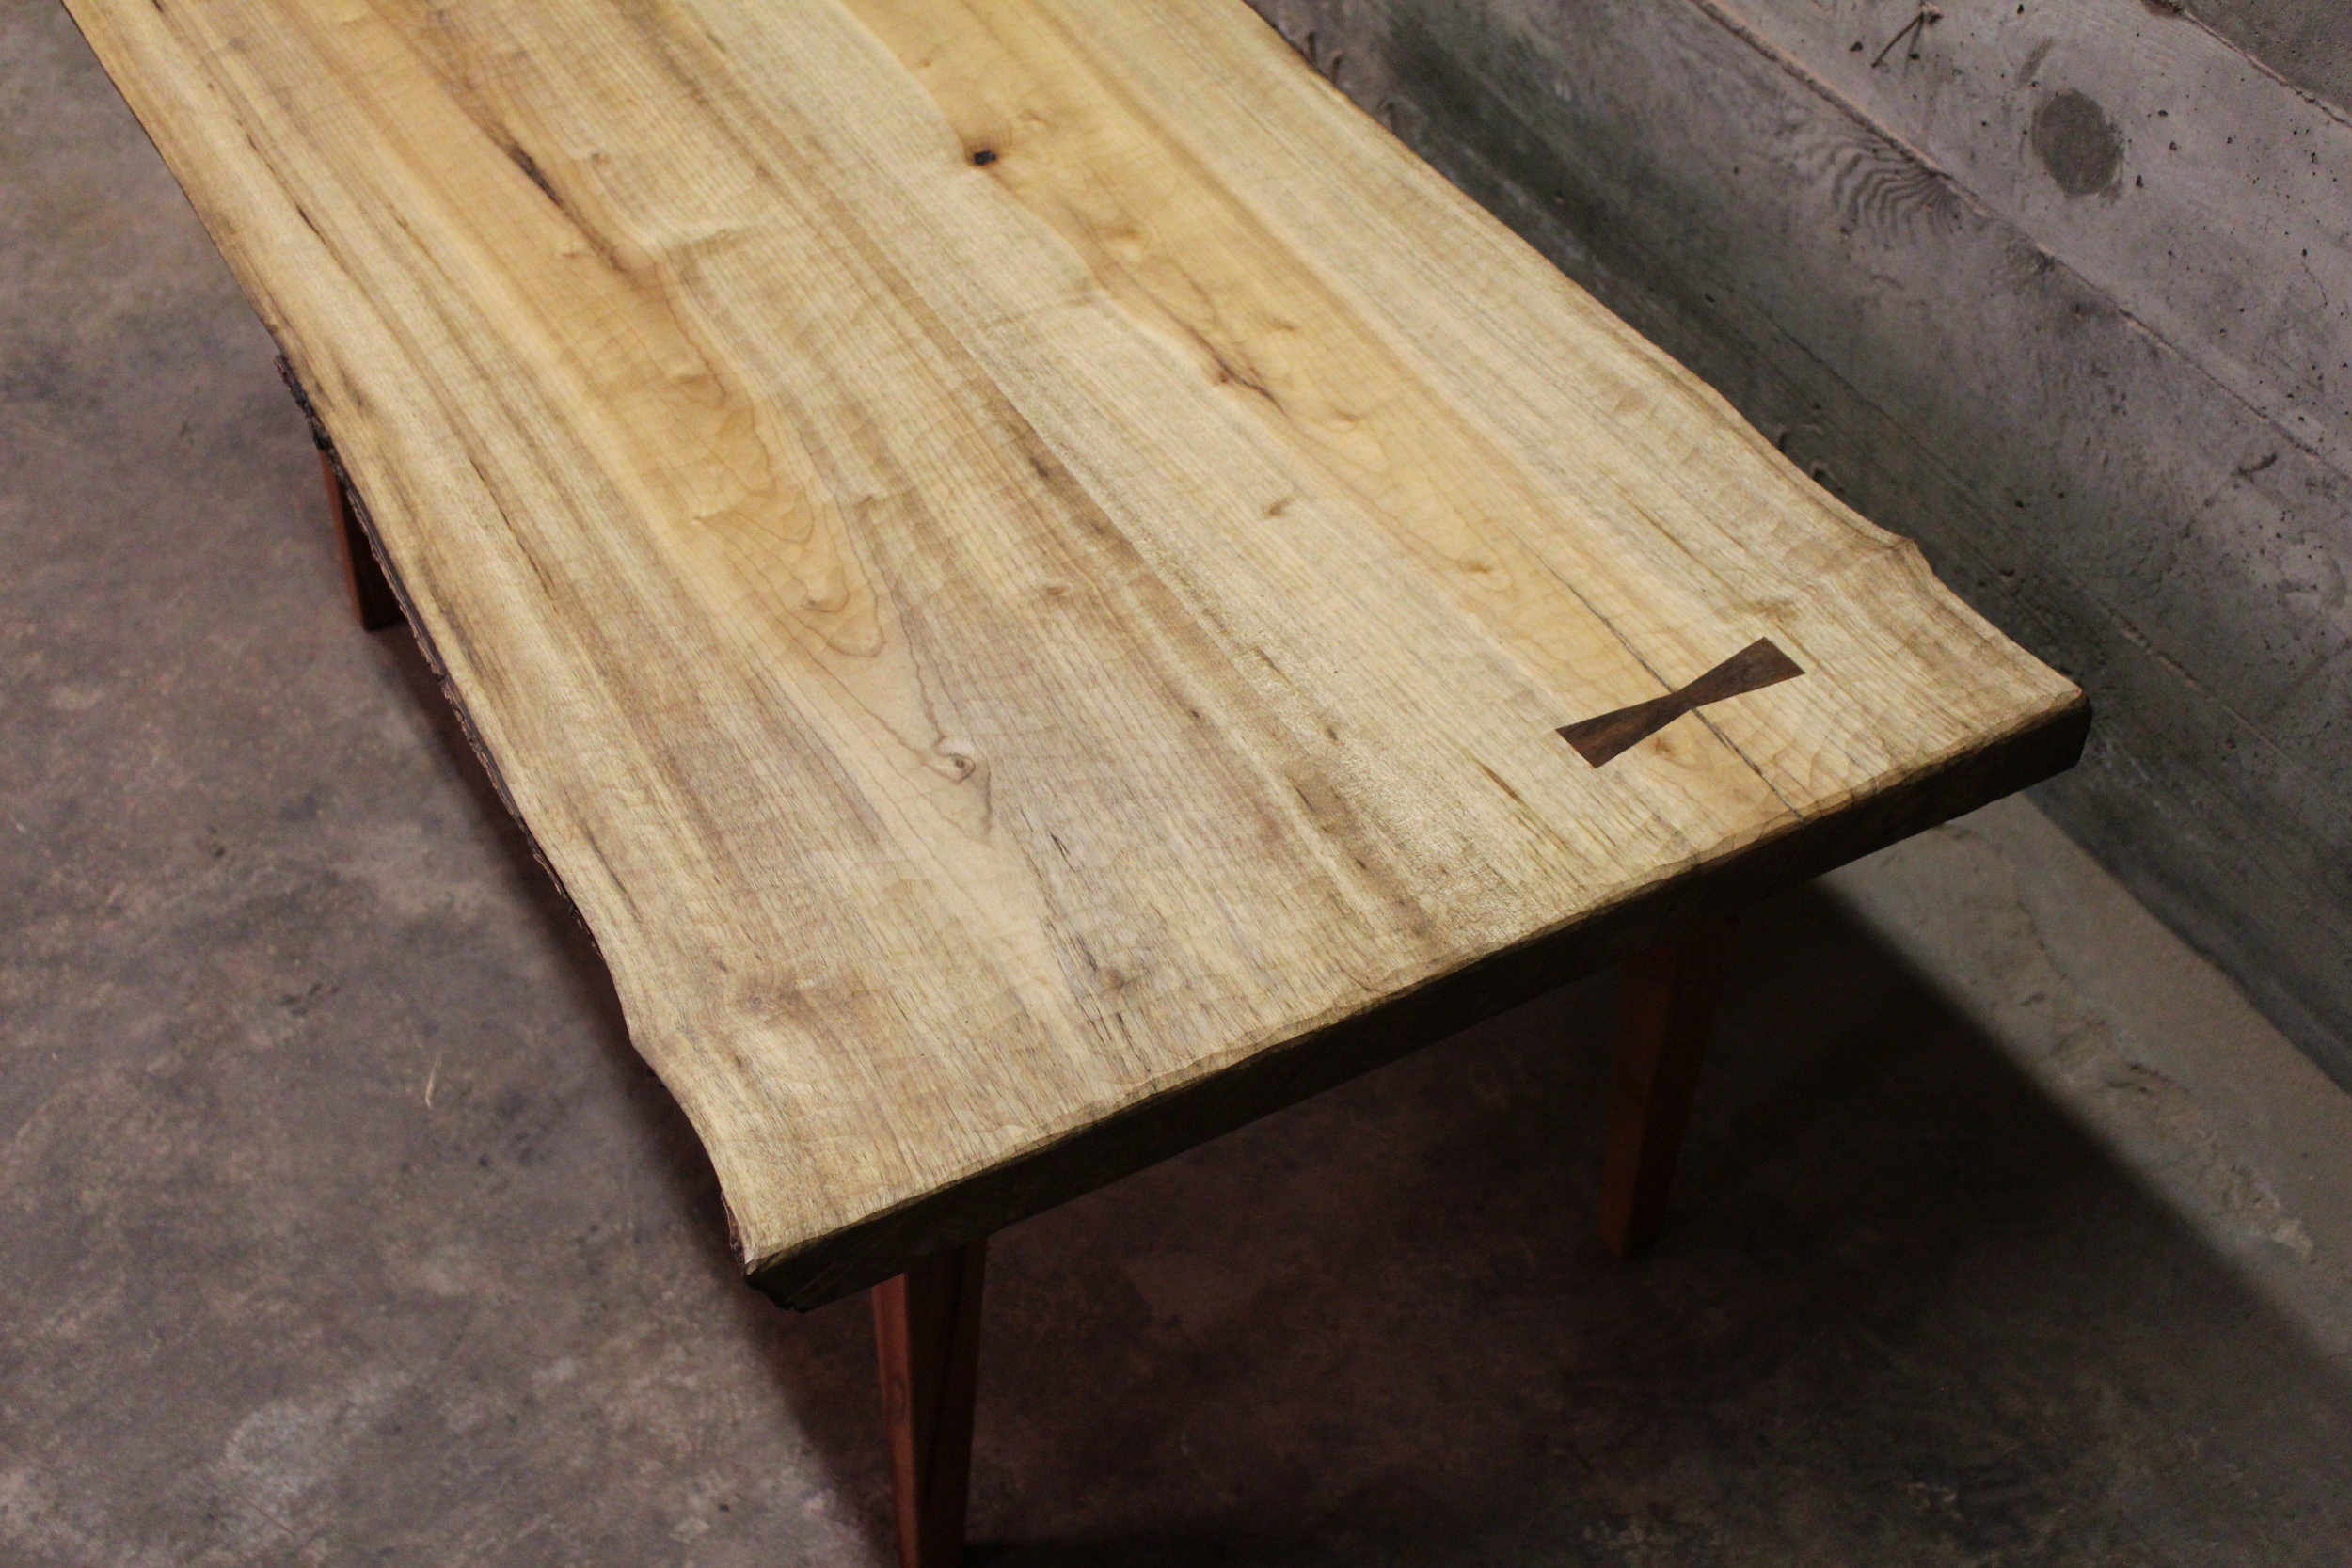 Myrtle & Madrone Coffee Table - A 42